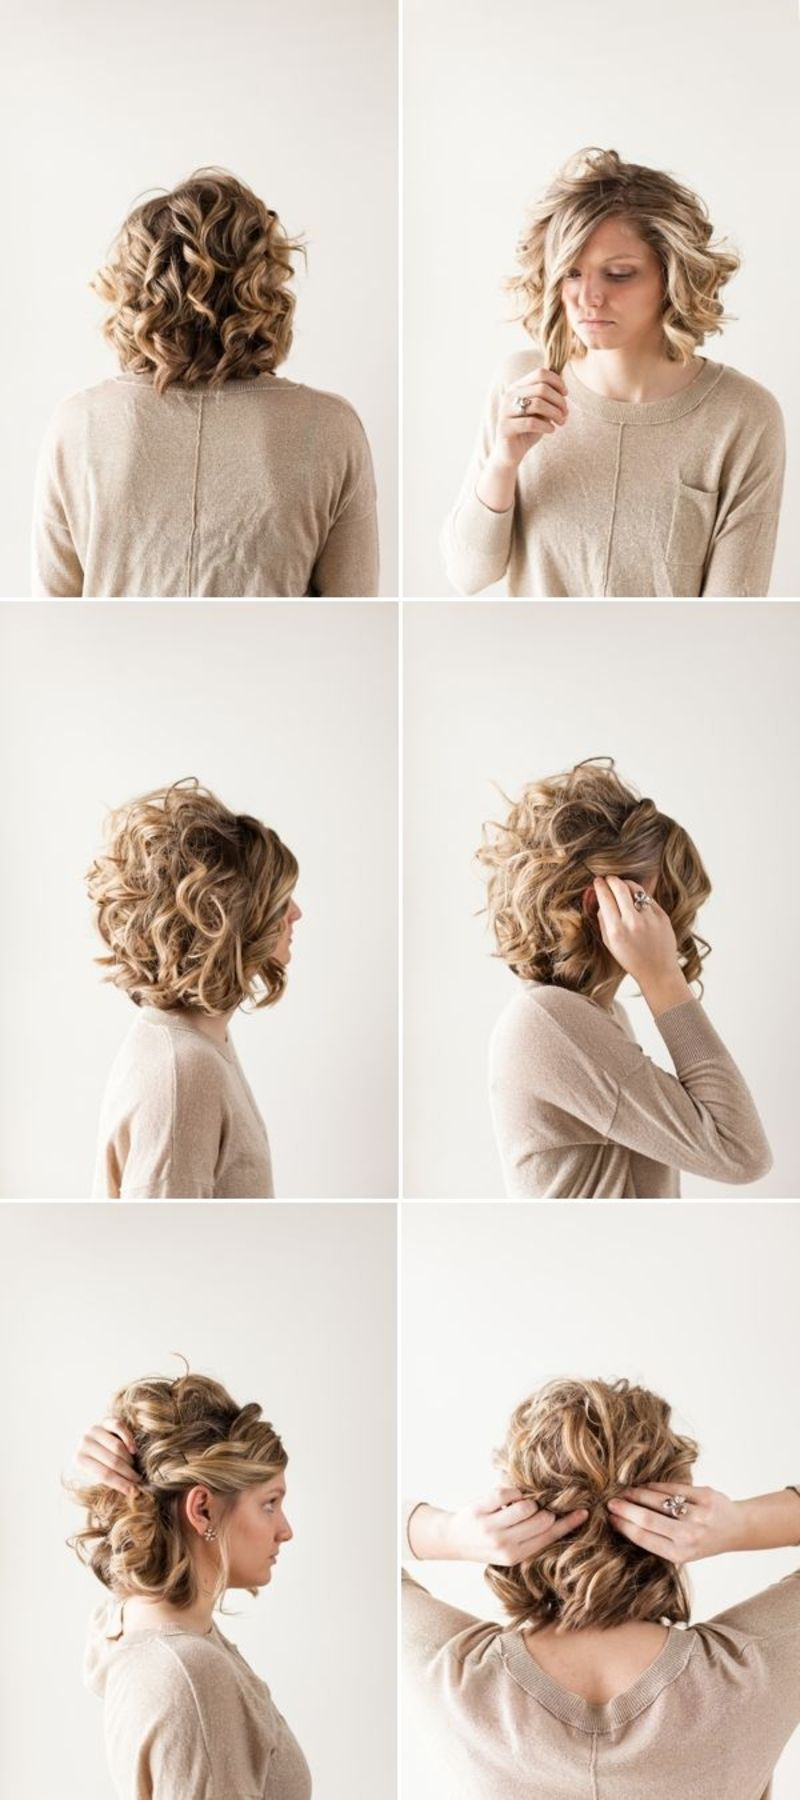 28 Super Chic Curly Hairstyles For Short Hair Short Hair Updo Short Hair Styles Hair Styles